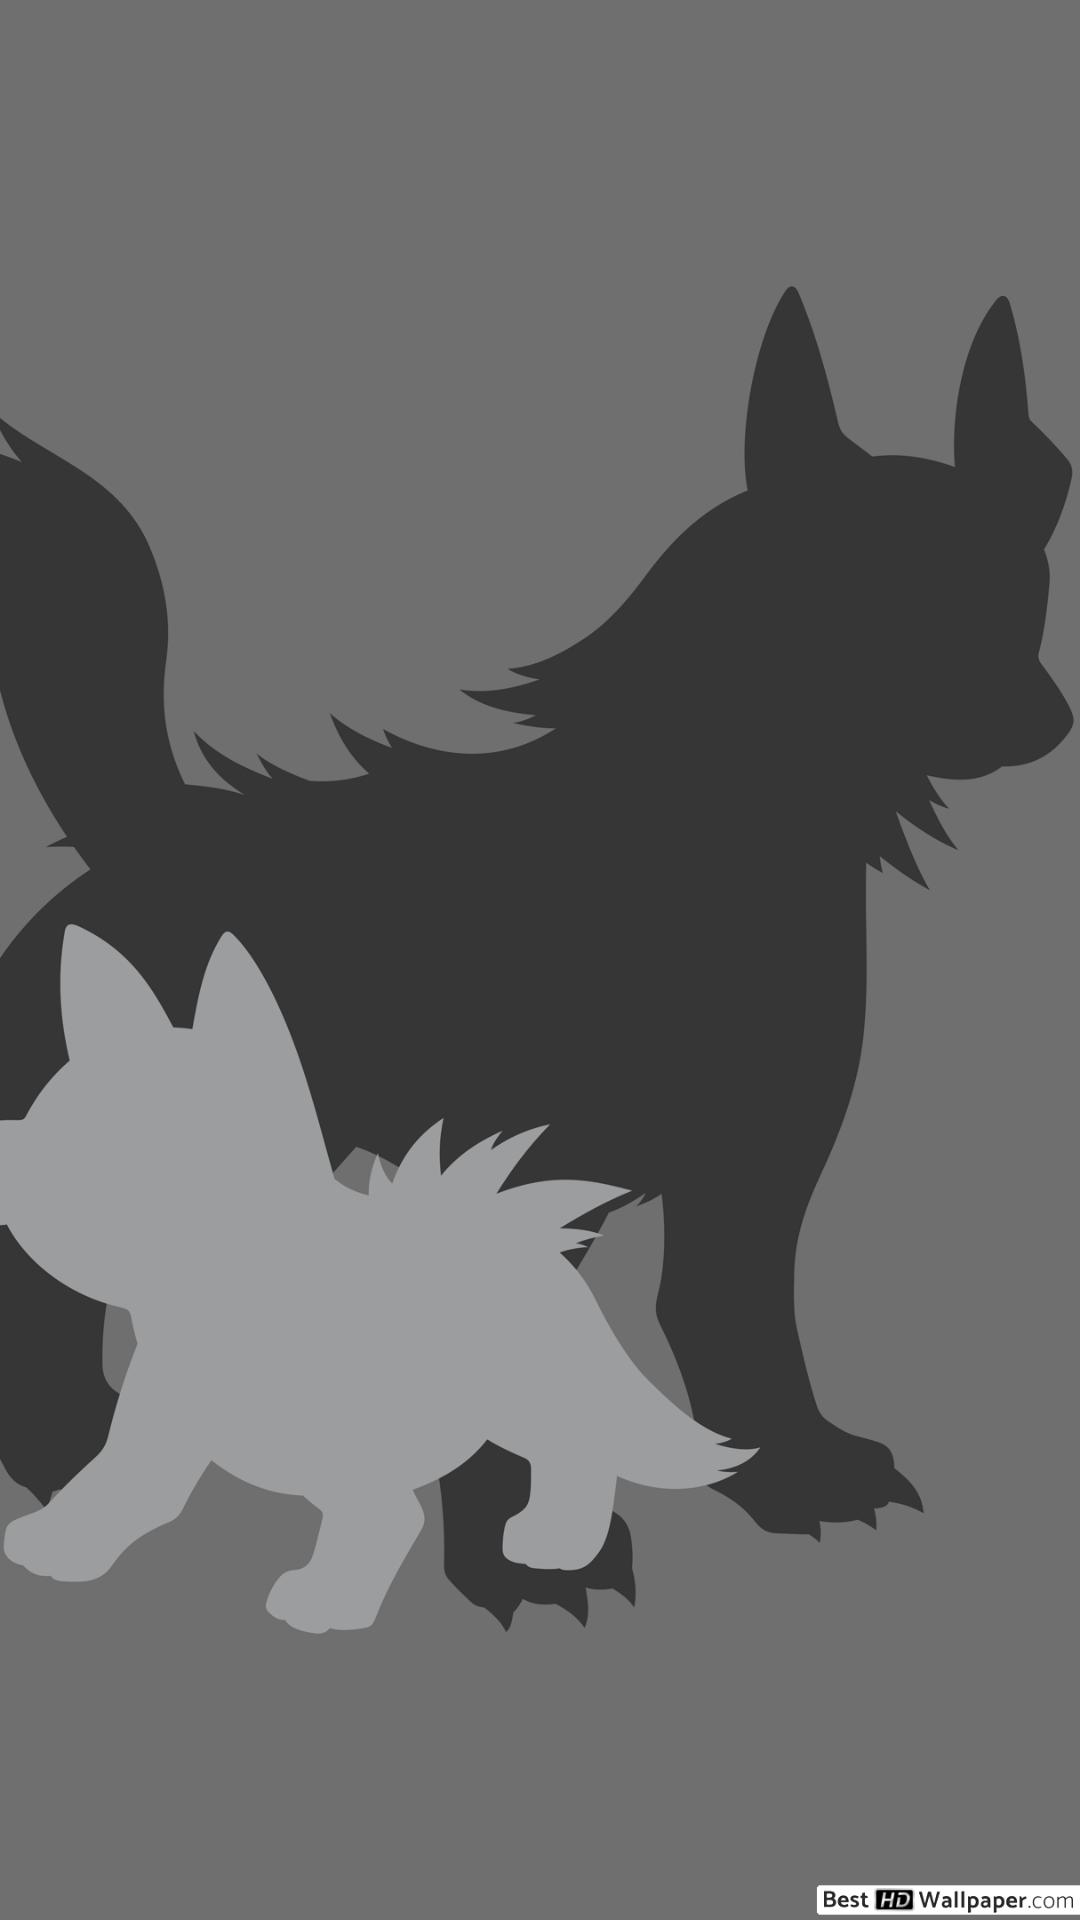 Mightyena and Poochyena of Pokemon HD wallpaper download 1080x1920